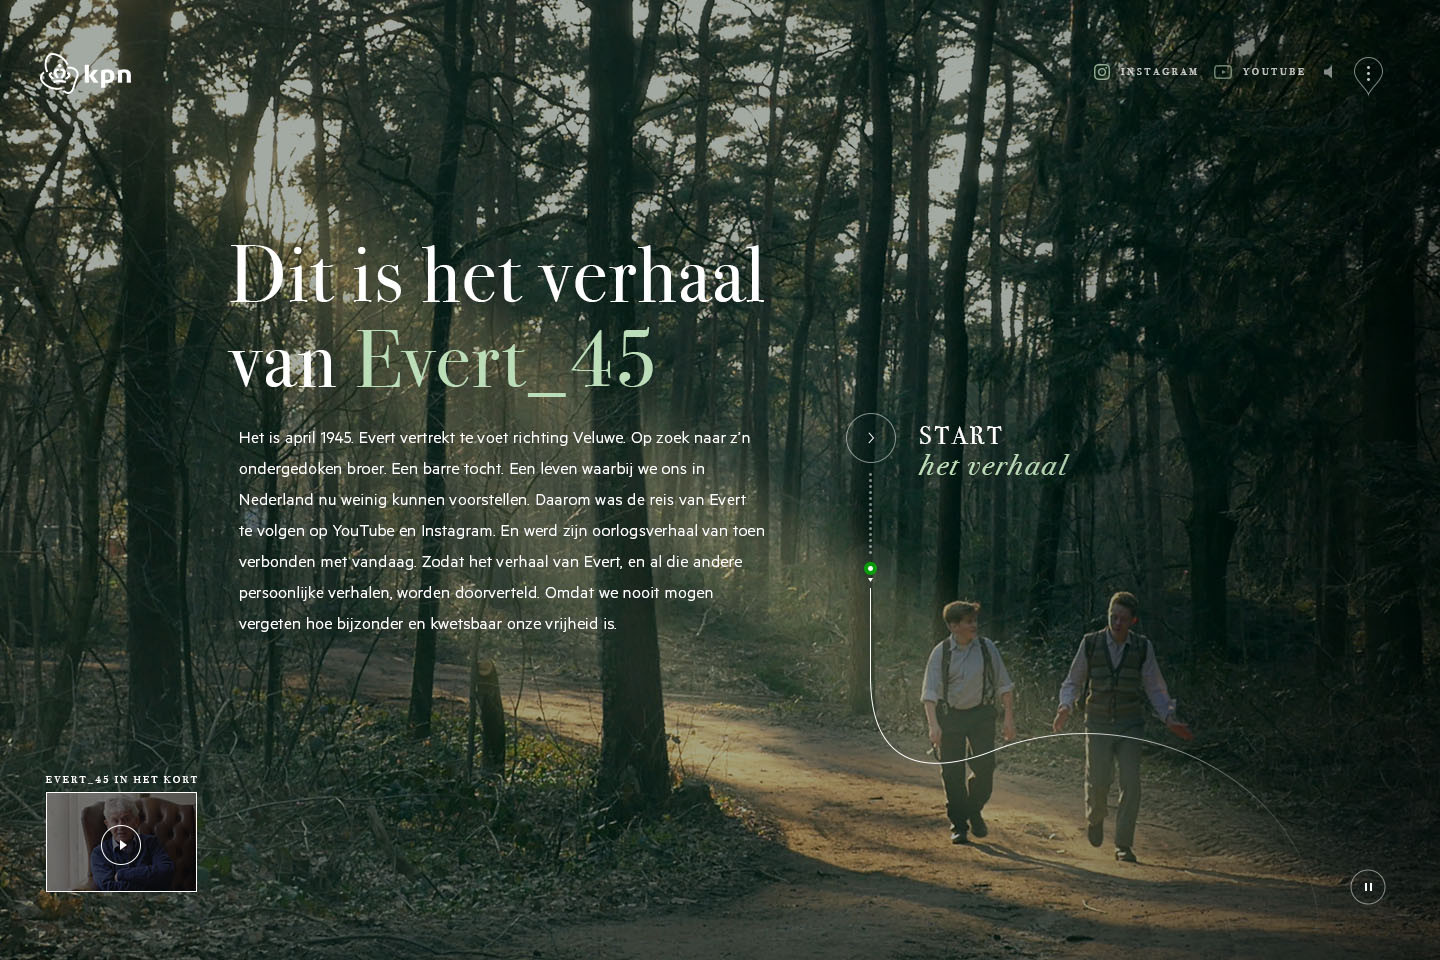 Evert45 website 1440x960 1.jpg